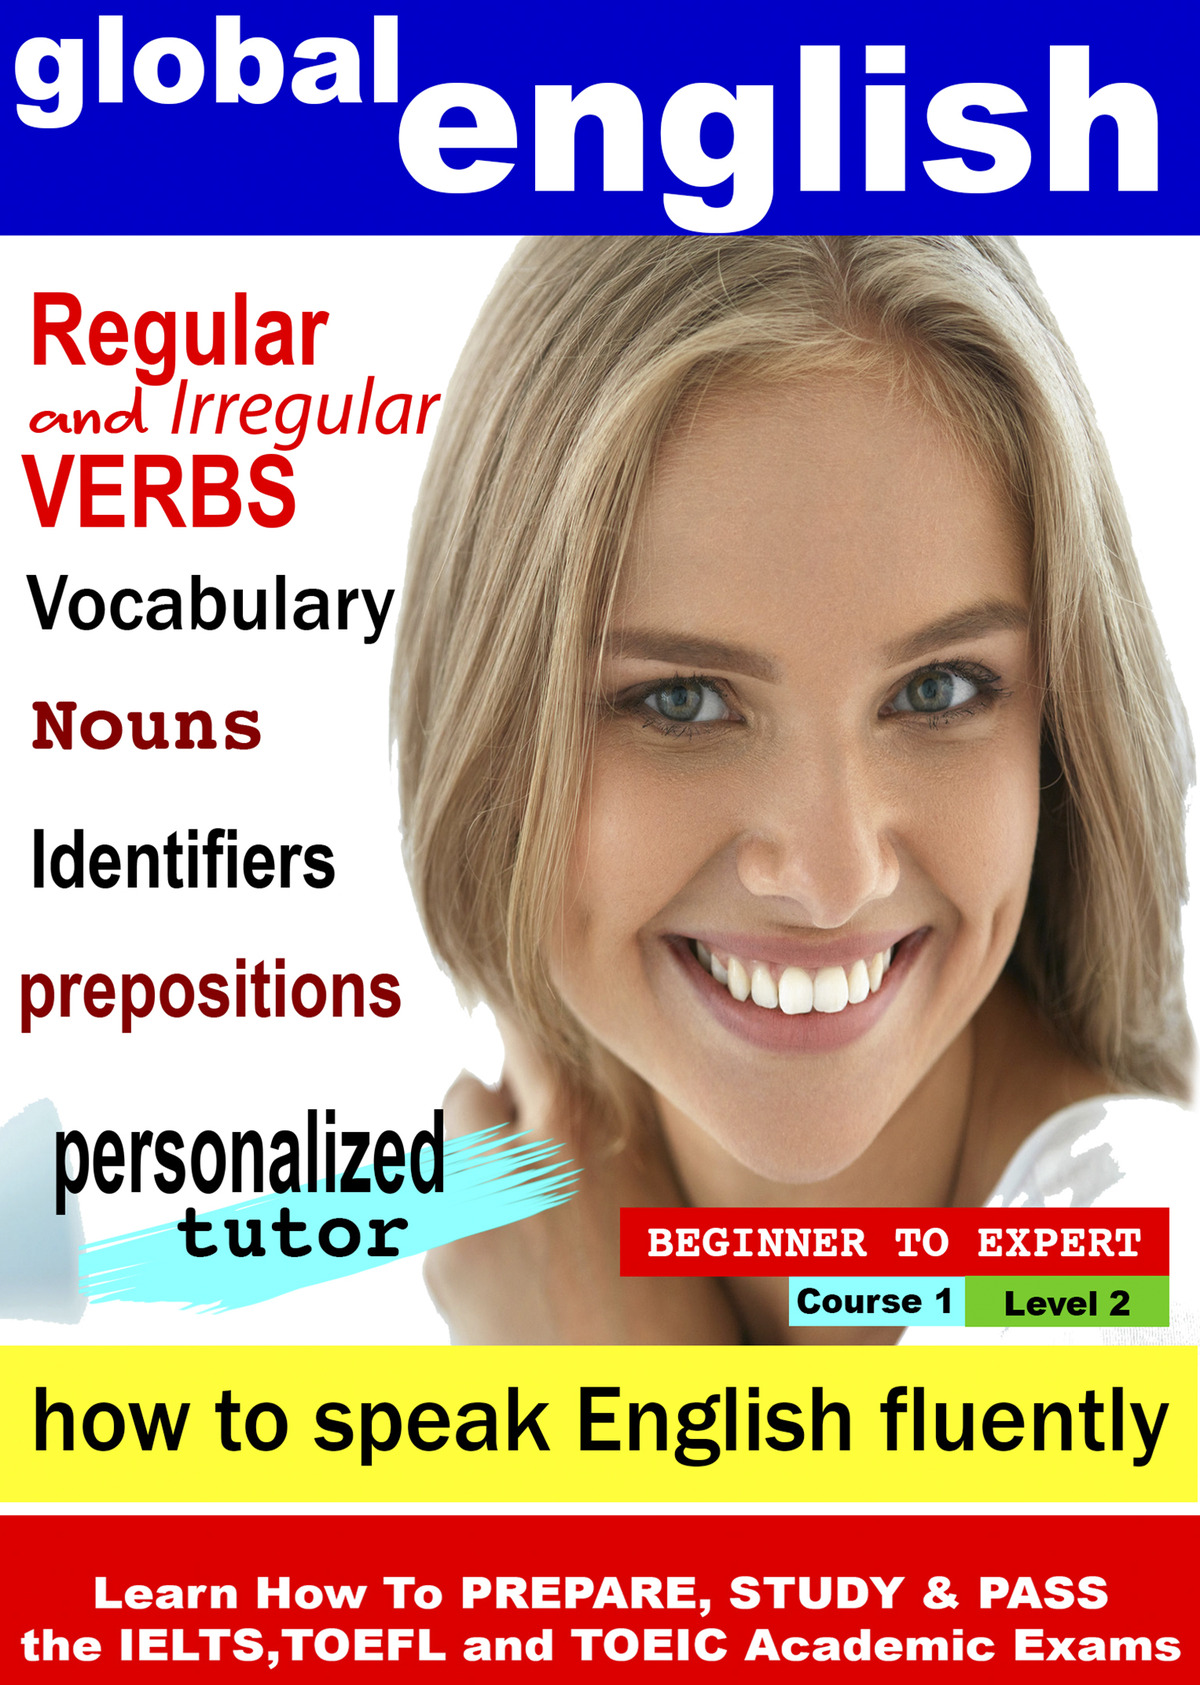 K7002 - Vocabulary, Nouns, Regular & Irregular Verbs, Identifiers, Prepositions (Lesson 2)